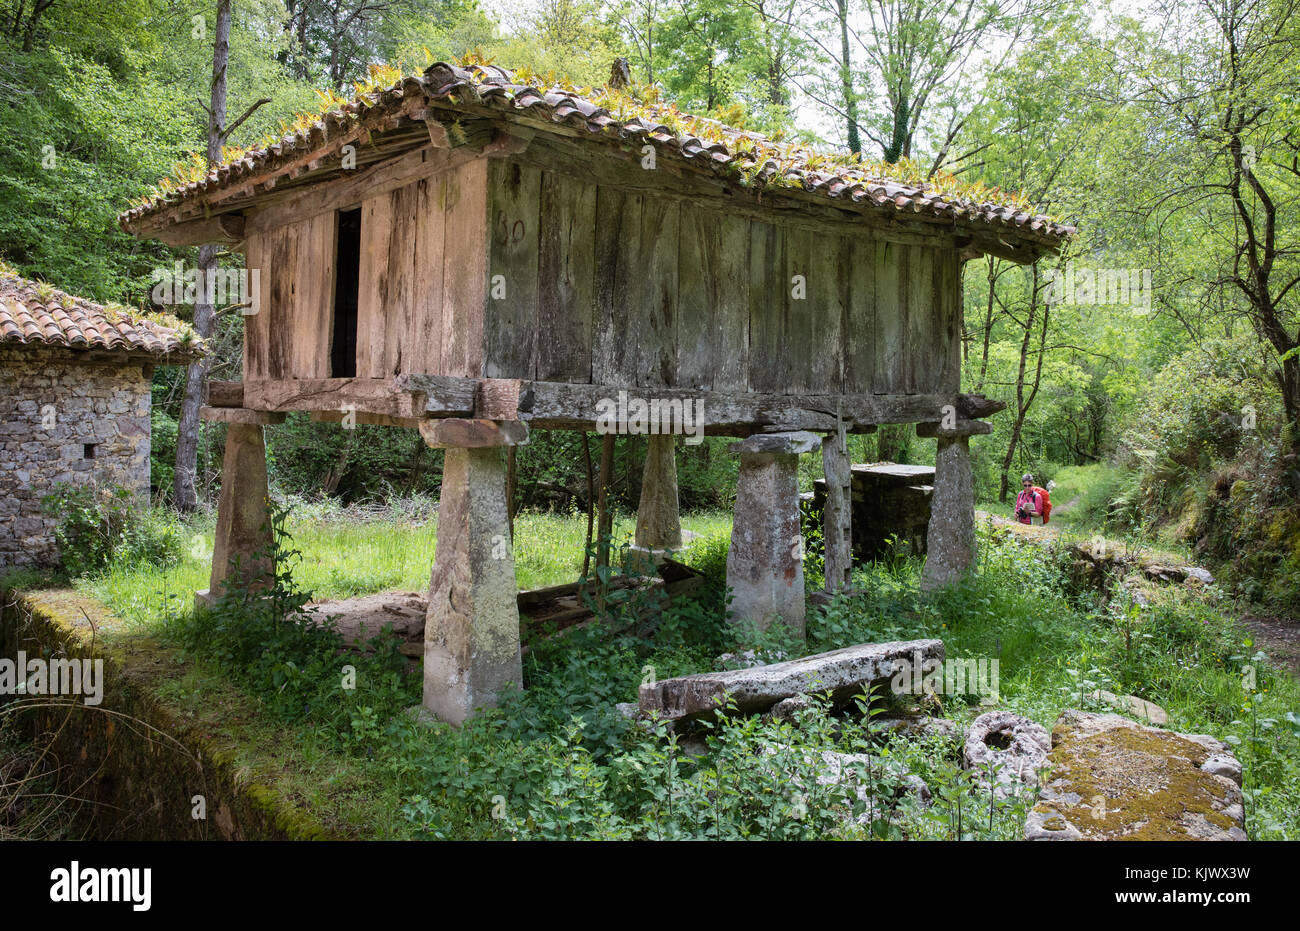 Asturian raised granary or Oriel near Mestas in the foothills of the Picos de Europa in northern Spain - Stock Image